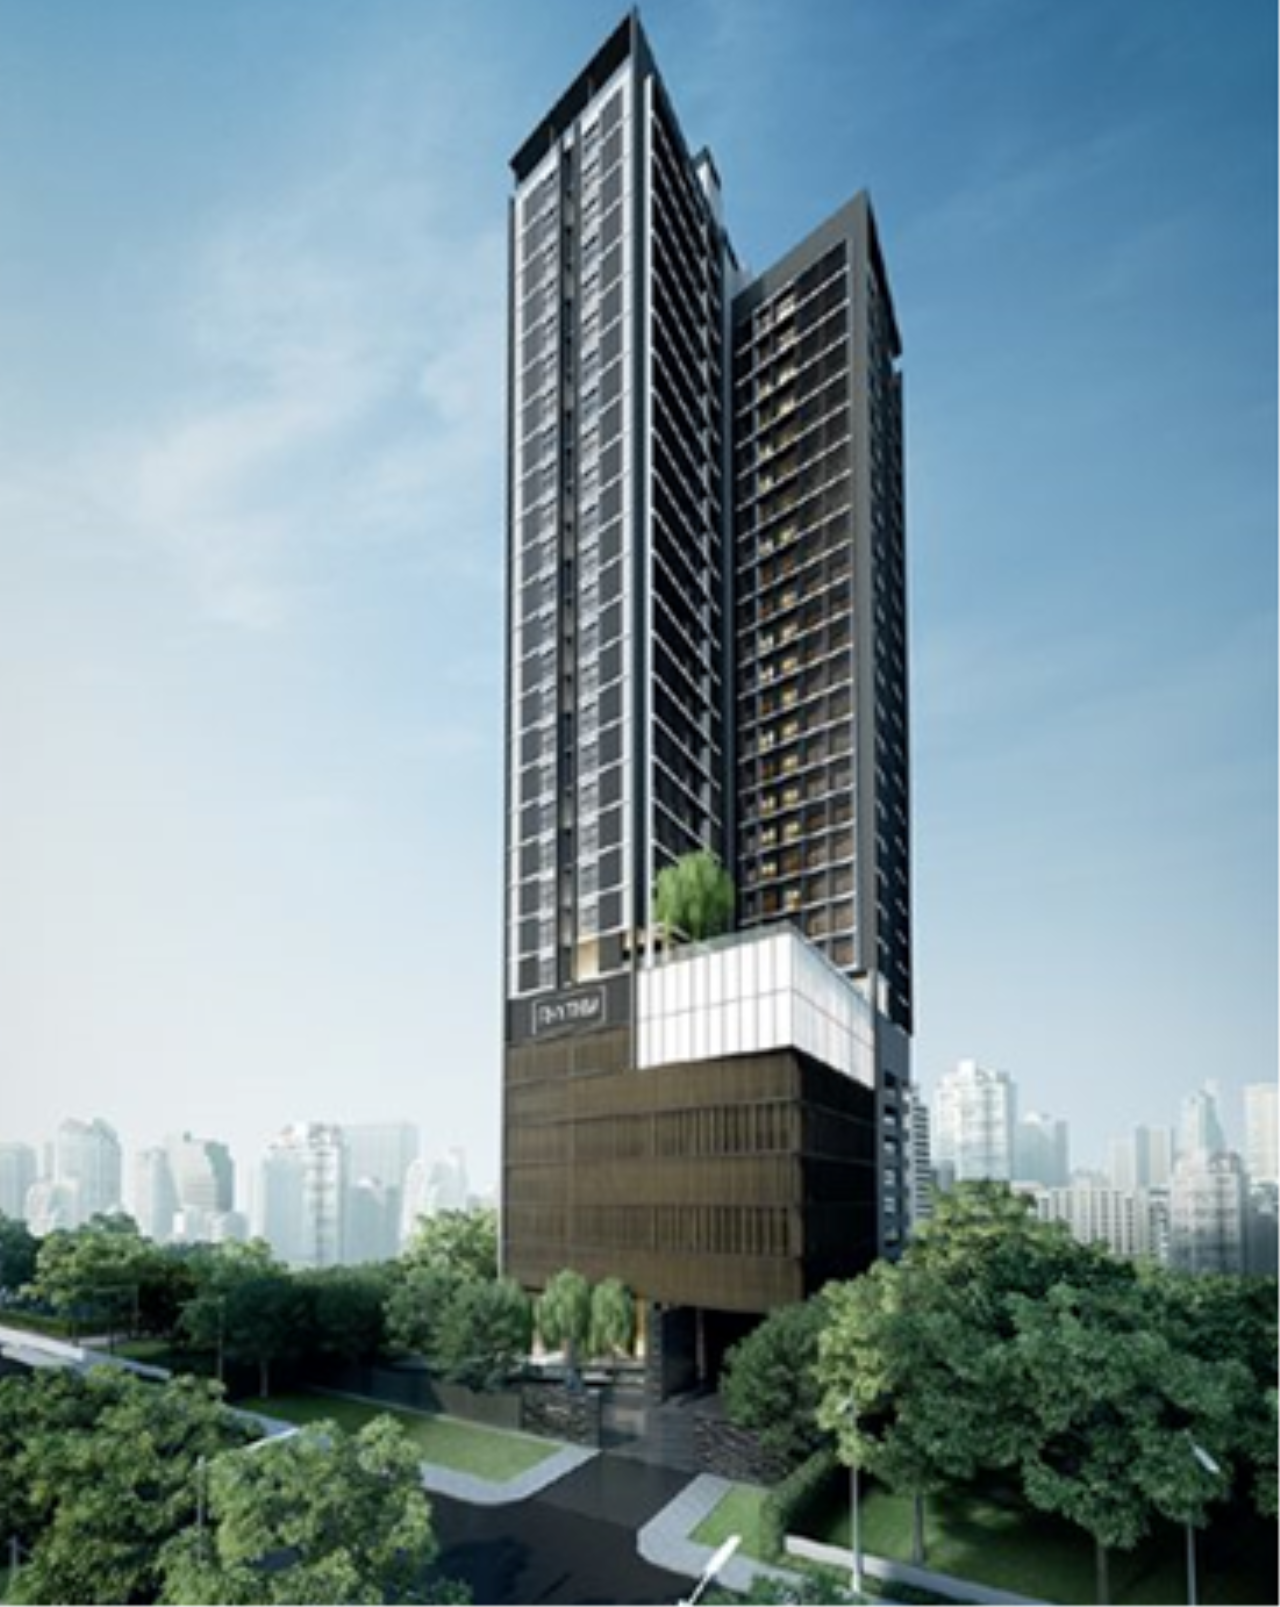 RE/MAX CondoDee Agency's Small Condo @ Asoke - Rama 9 - HOT DEAL! 3